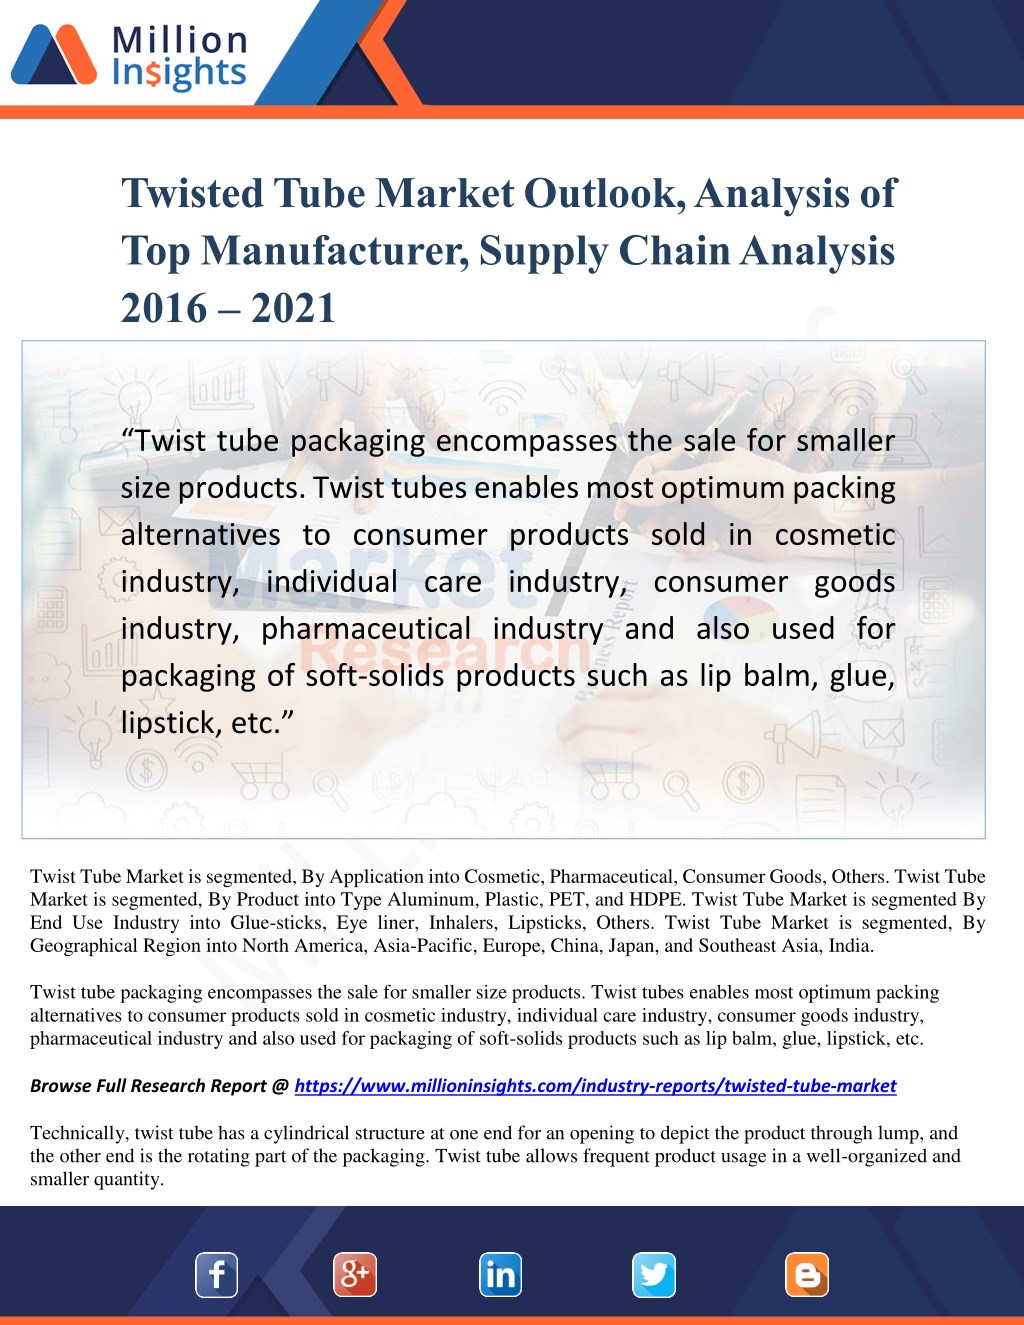 PPT - Twisted Tube Market Outlook, Analysis of Top